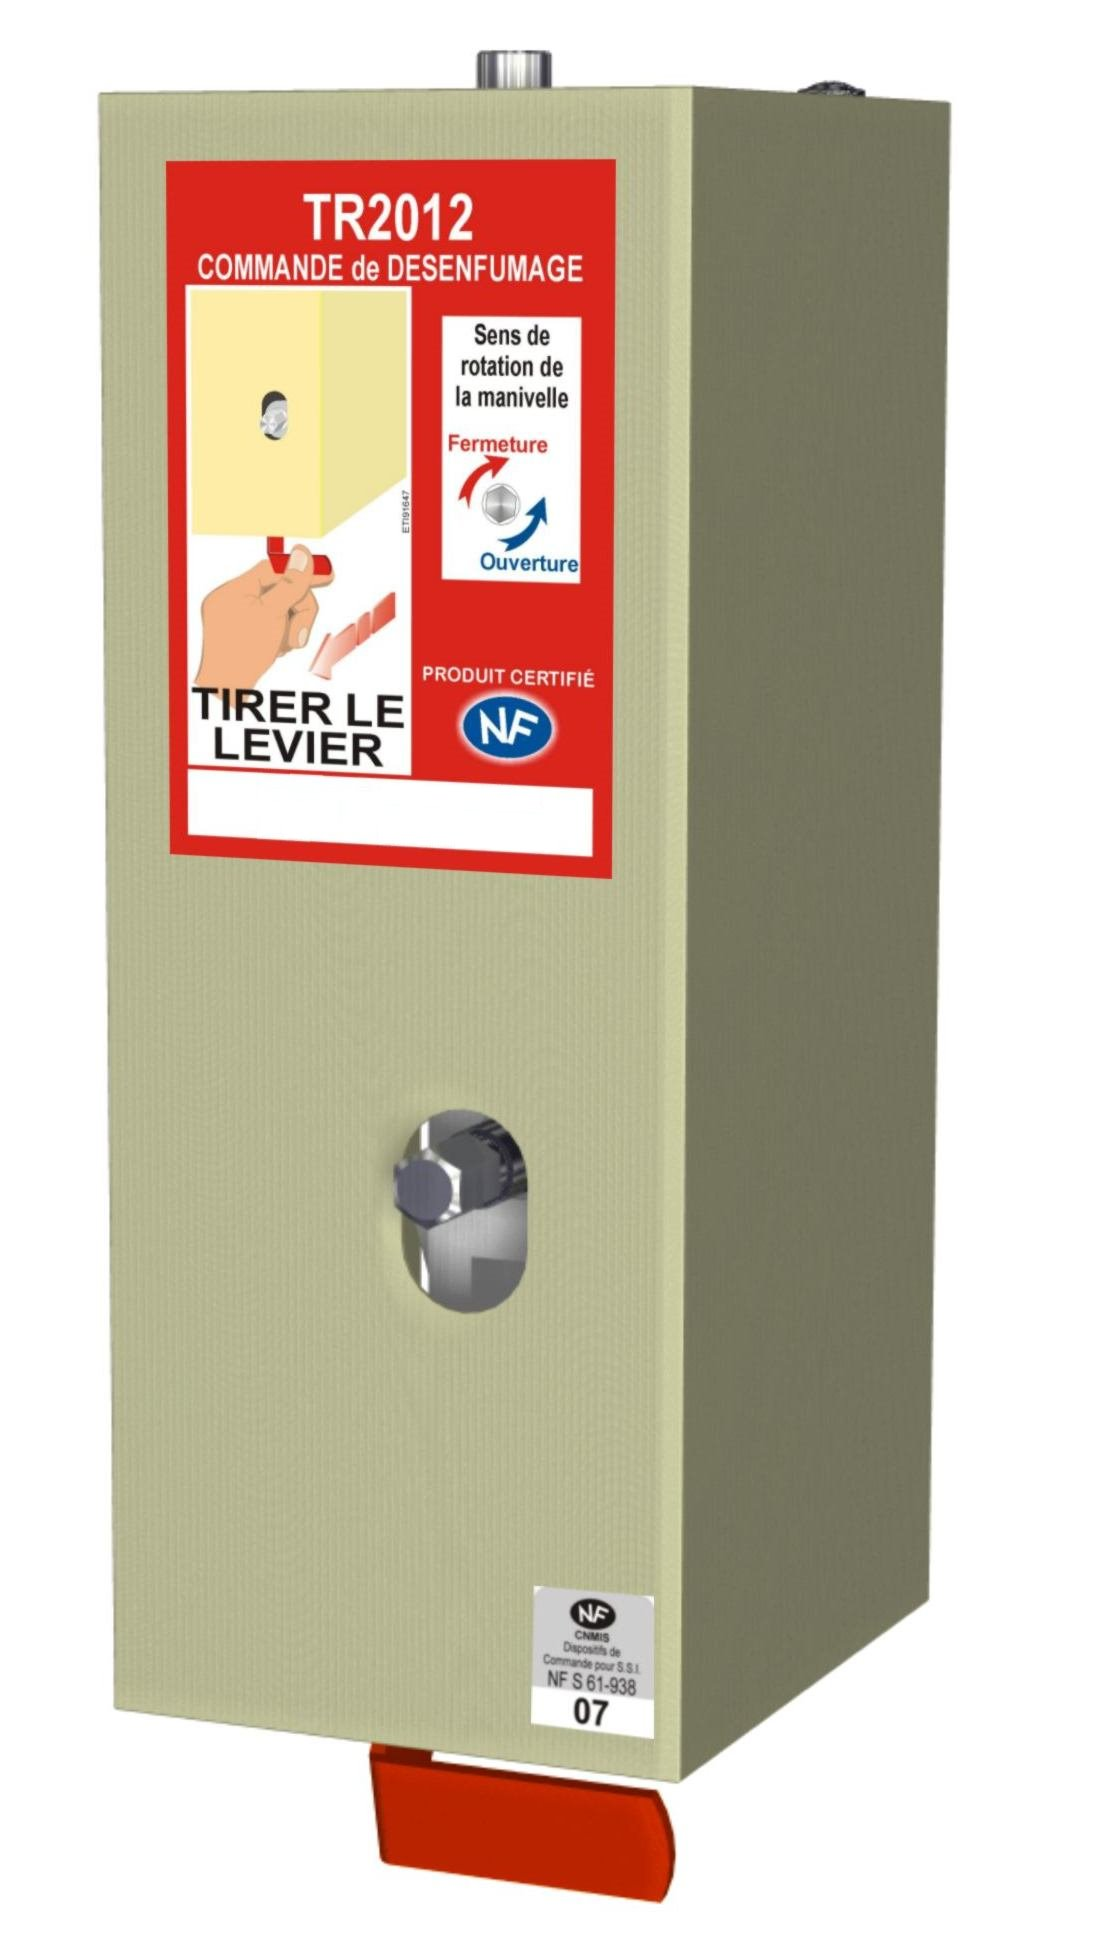 TR2012 - Treuil modulaire certifié NF avec déclencheur rouge et manivelle - NF certified modular winch with red release handle and cranck